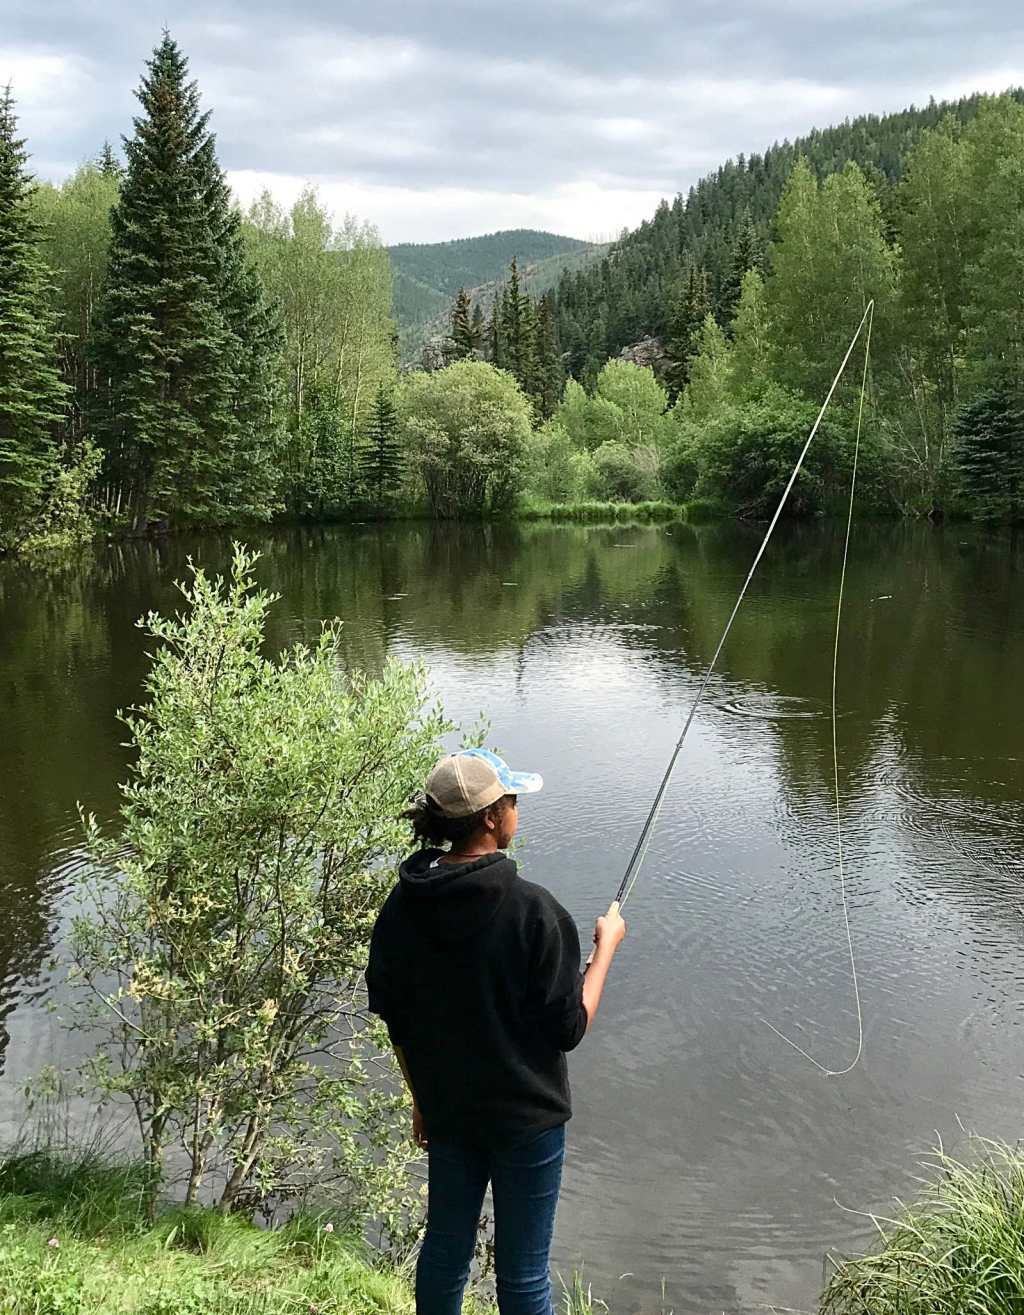 A dude ranch vacation is a great way to connect with nature and each other.  #vacation #colorado #dude #ranch #horses #flyfishing #rafting #tumblingriverranch